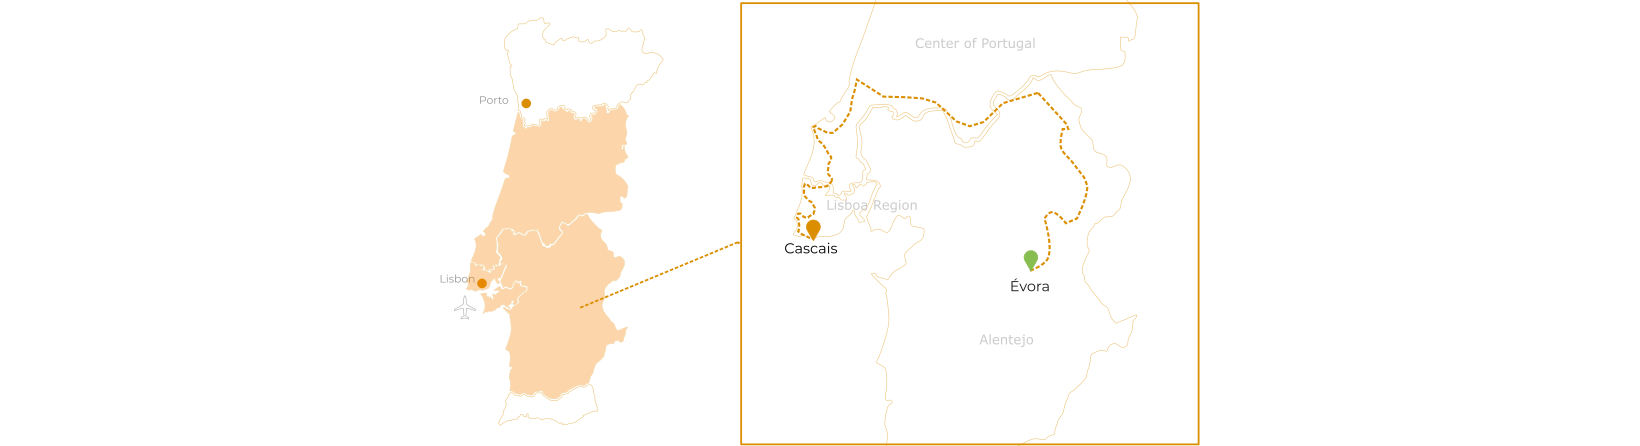 Jewels of Portugal Bike Tour route map